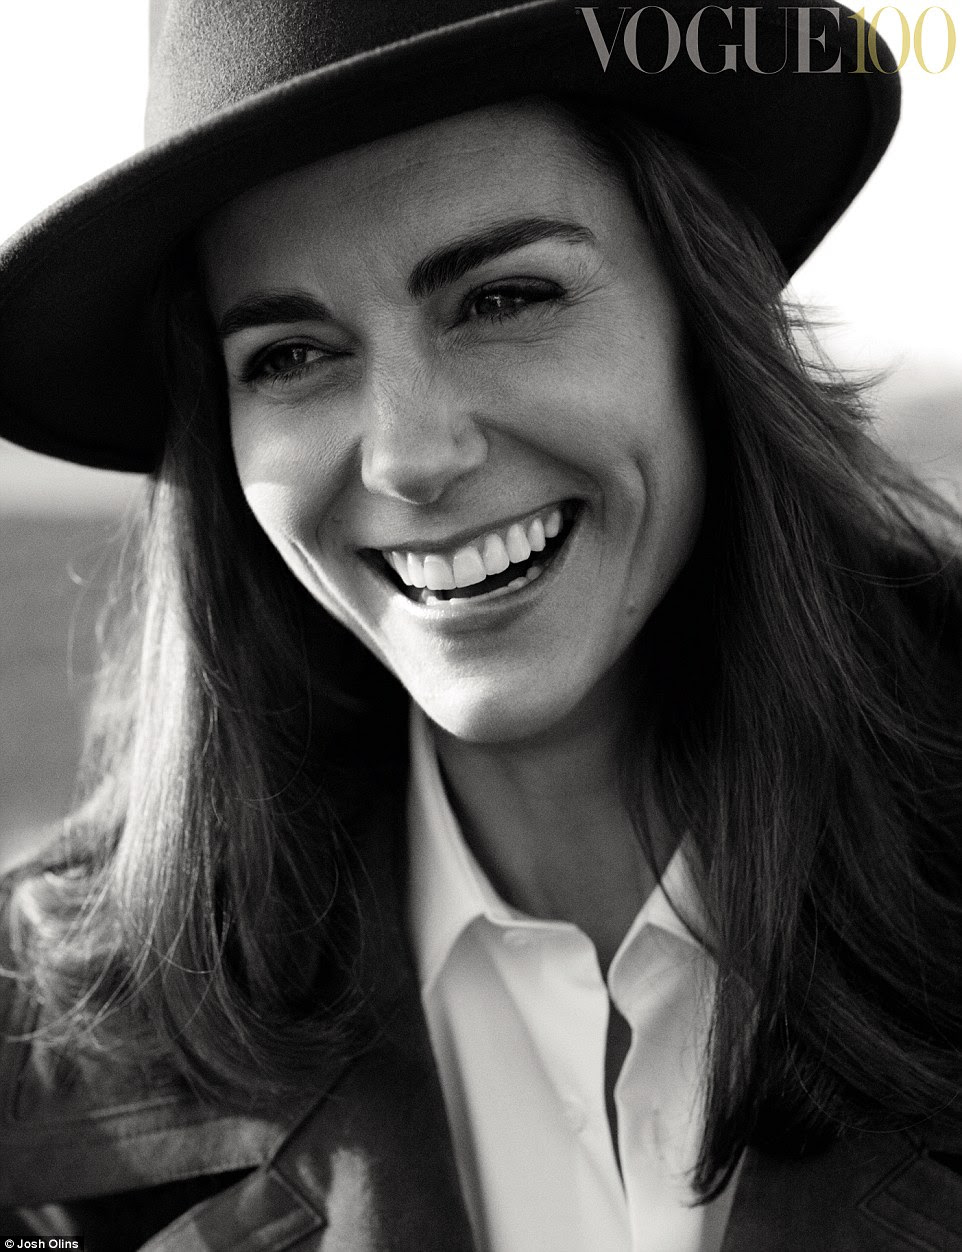 British Vogue and the National Portrait Gallery collaborated on the series of photographic portraits with HRH The Duchess of Cambridge. Here, Kate is wearing a black fedora hat from Beyond Retro and a charcoal brown double-breasted suede coat and white shirt, both from Burberry